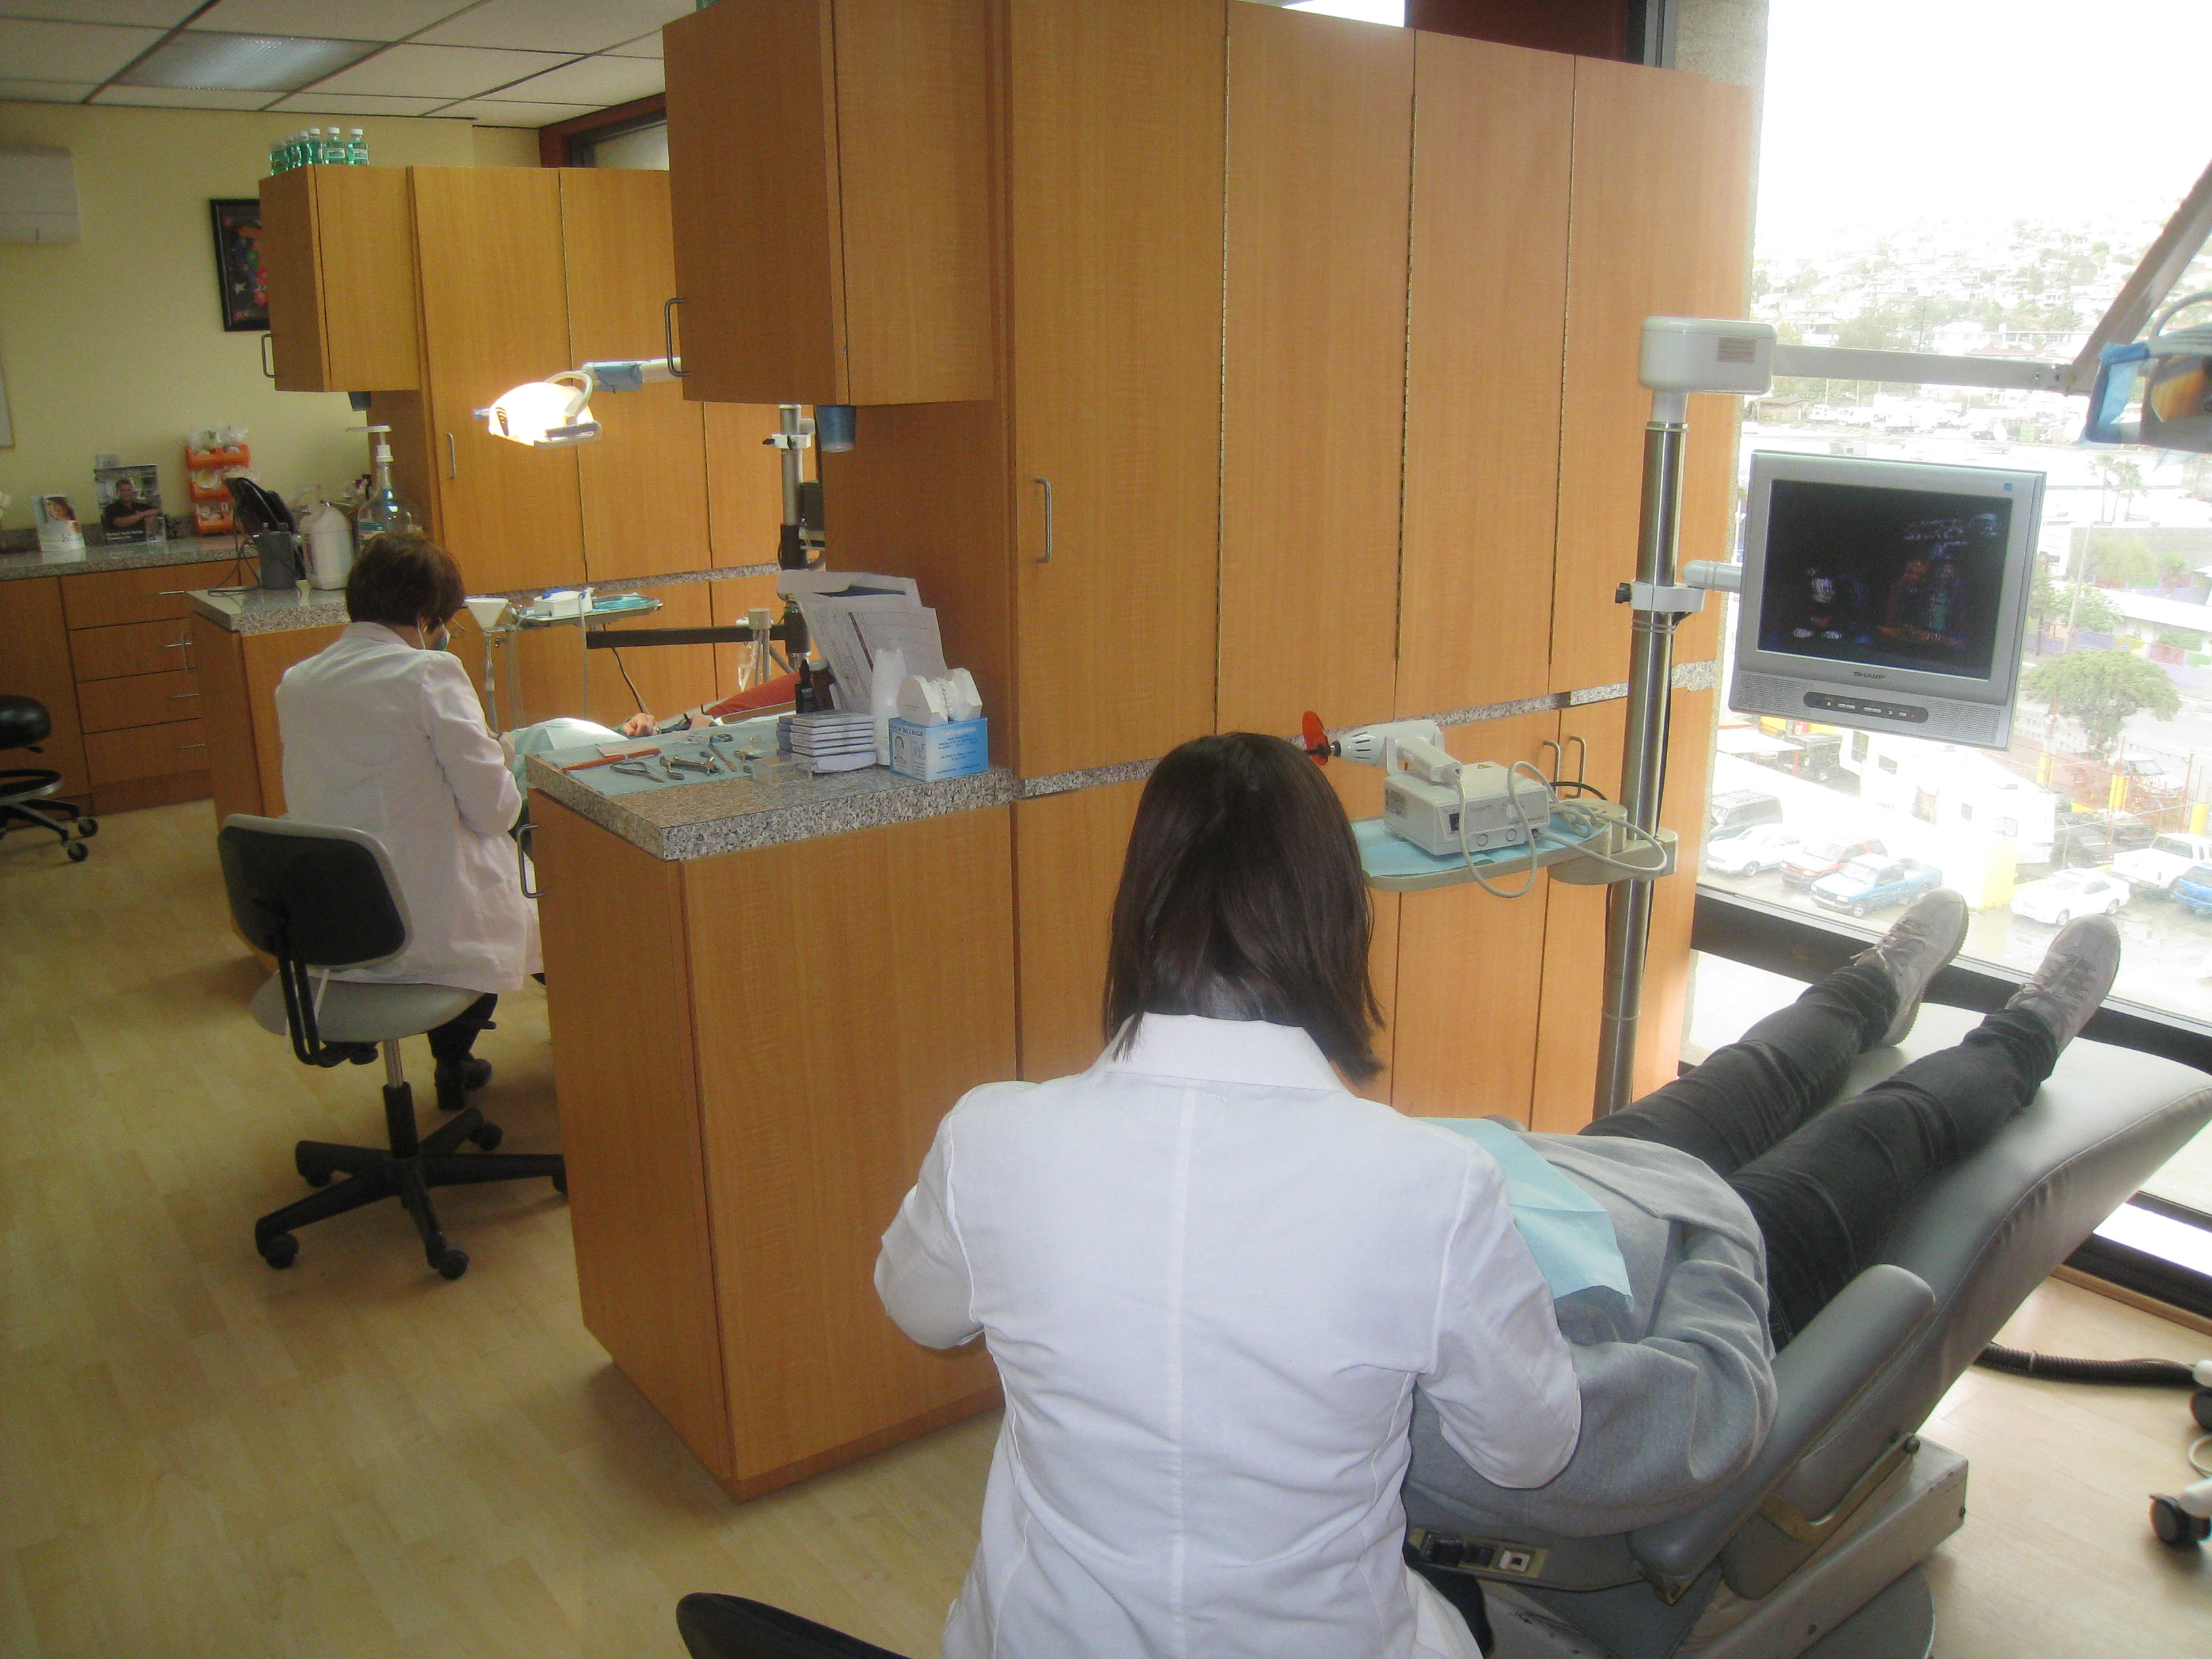 Dr. Carlos Adrian Casas, DDS, performs high-level, affordable dentistry in Tijuana, Mexico, at prices 50 percent less than dentists in the U.S.